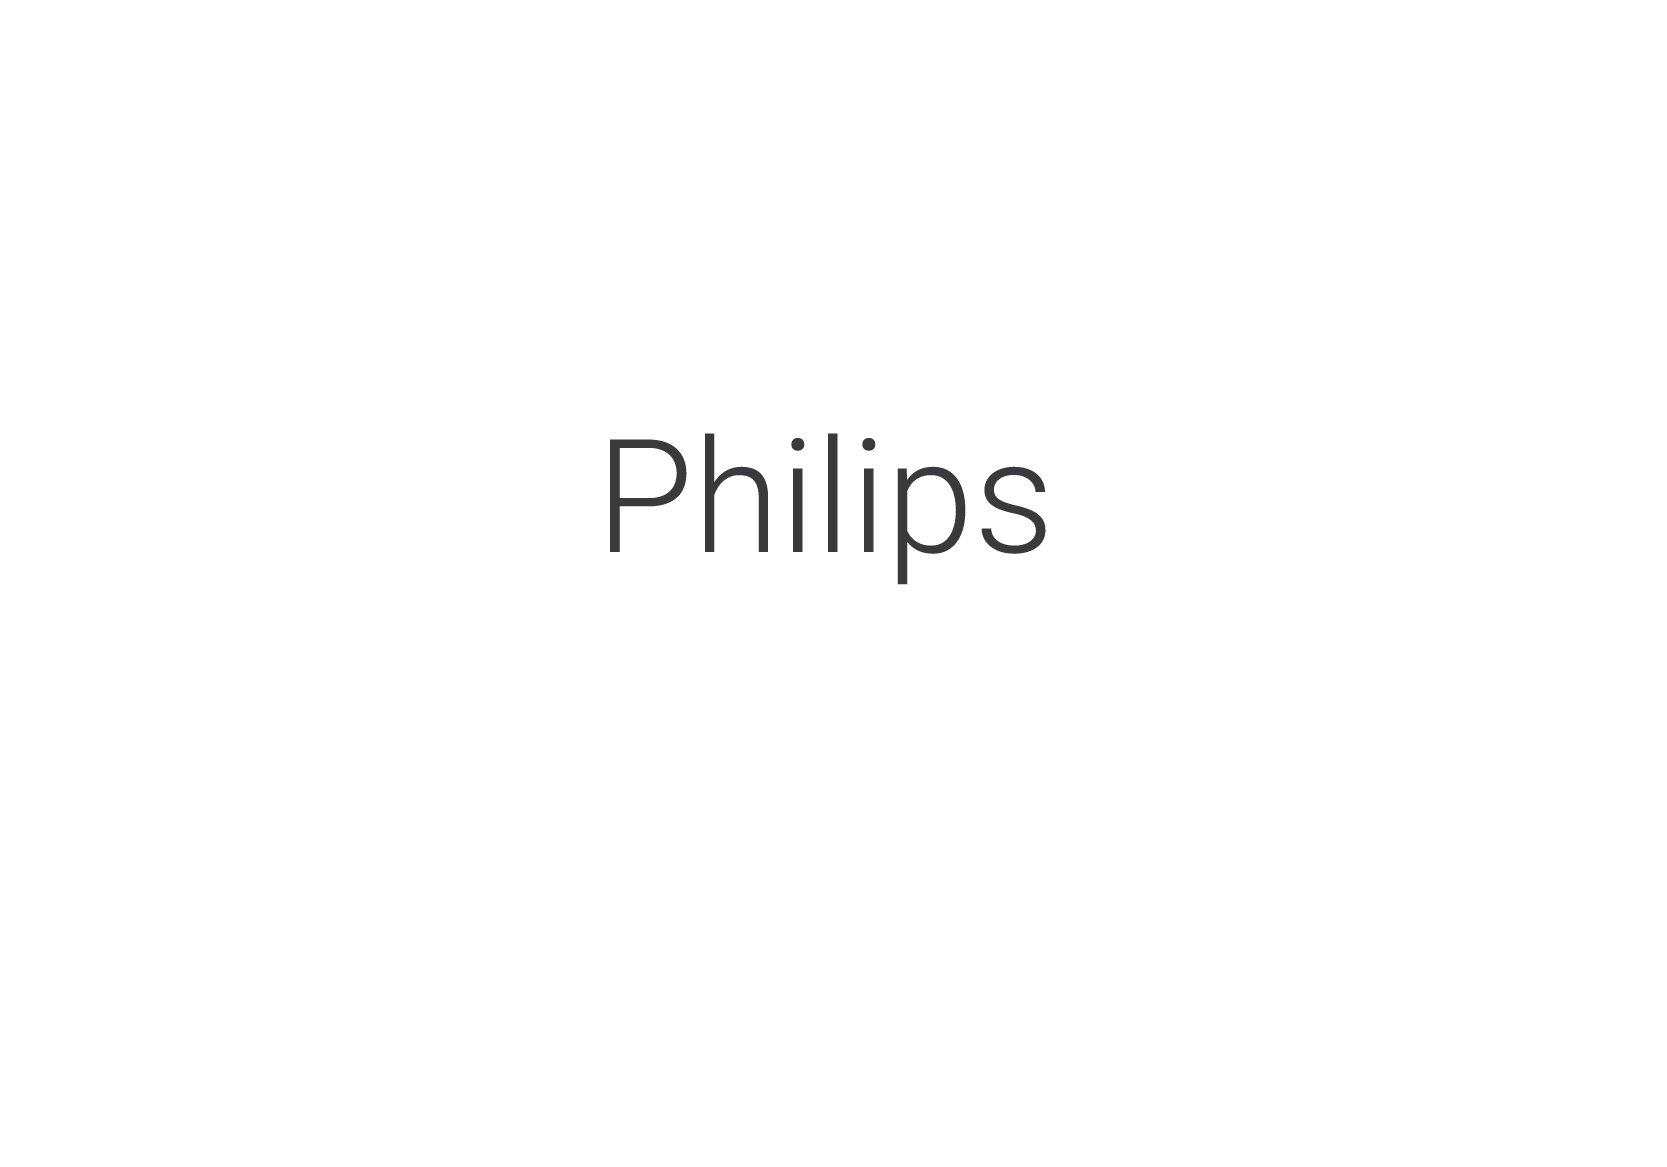 Philips (Royal Philips NV)